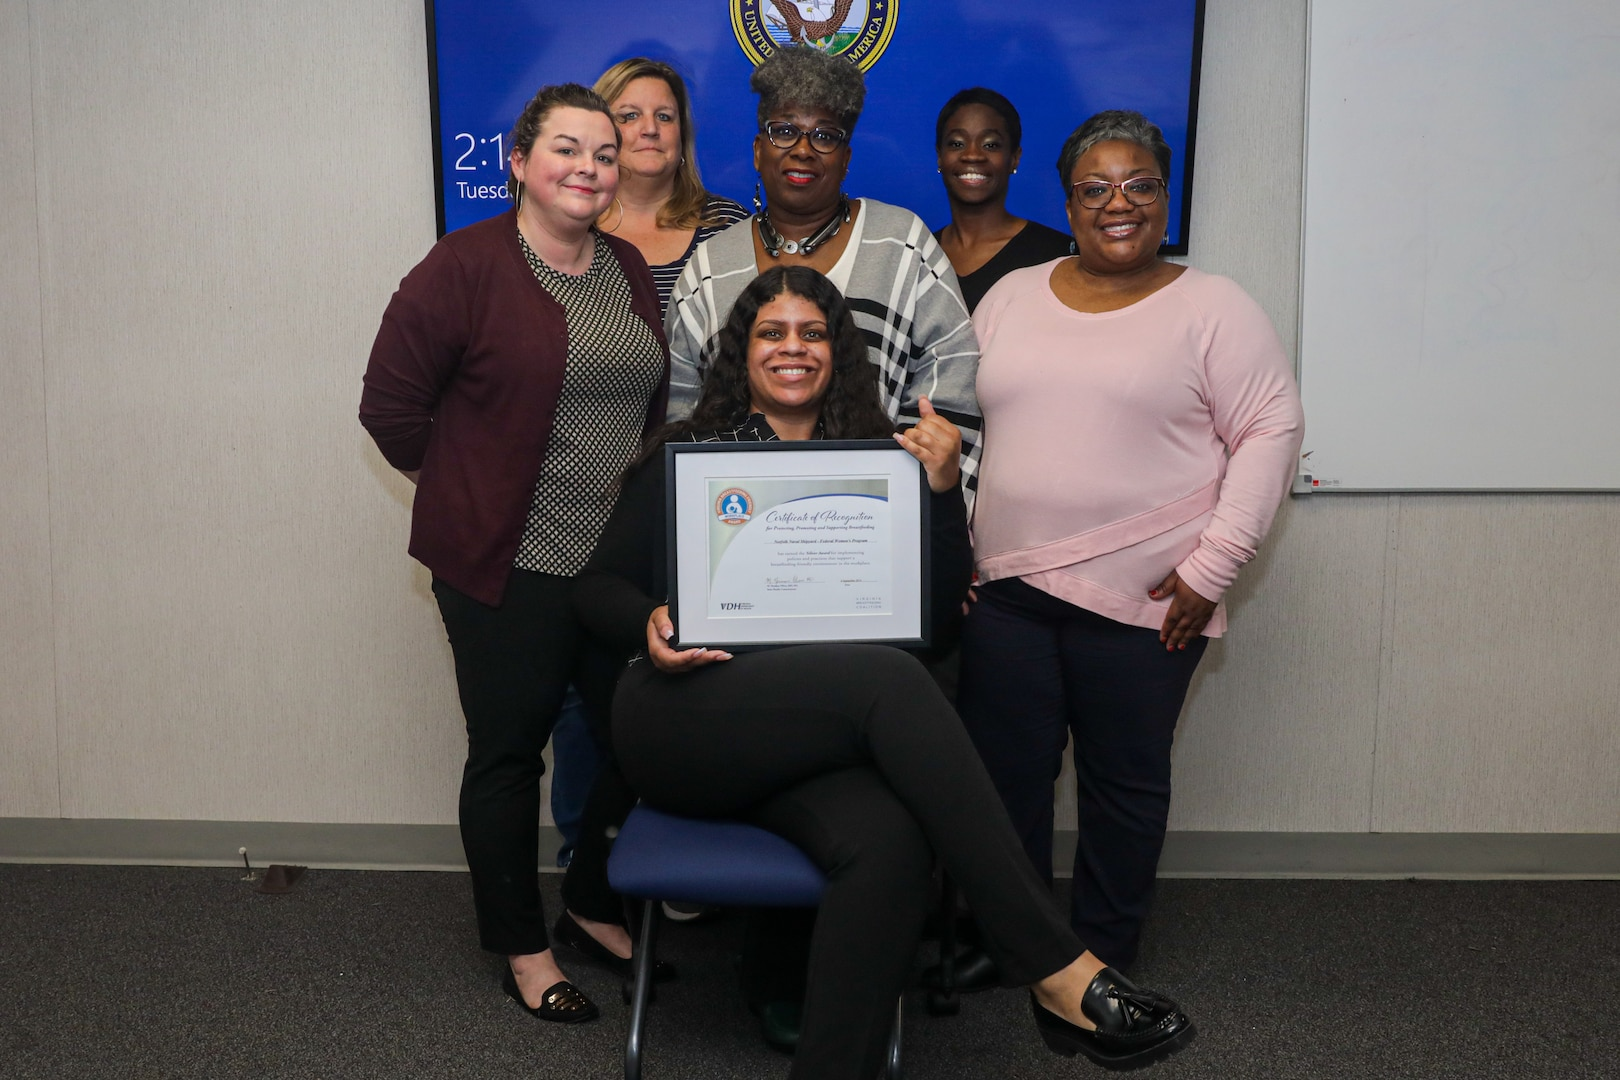 Some of the Federal Women's Program key board members with NNSY's certificate for receiving a silver rating: Waterfront Ombudsman Danielle Smith, Michelle Johnson, Public Relations Co-Chair Phyllis Scoggins, Public Relations Chair Ashley Chew, Vice President Aiya Williams, and President Carlynn Lucas.